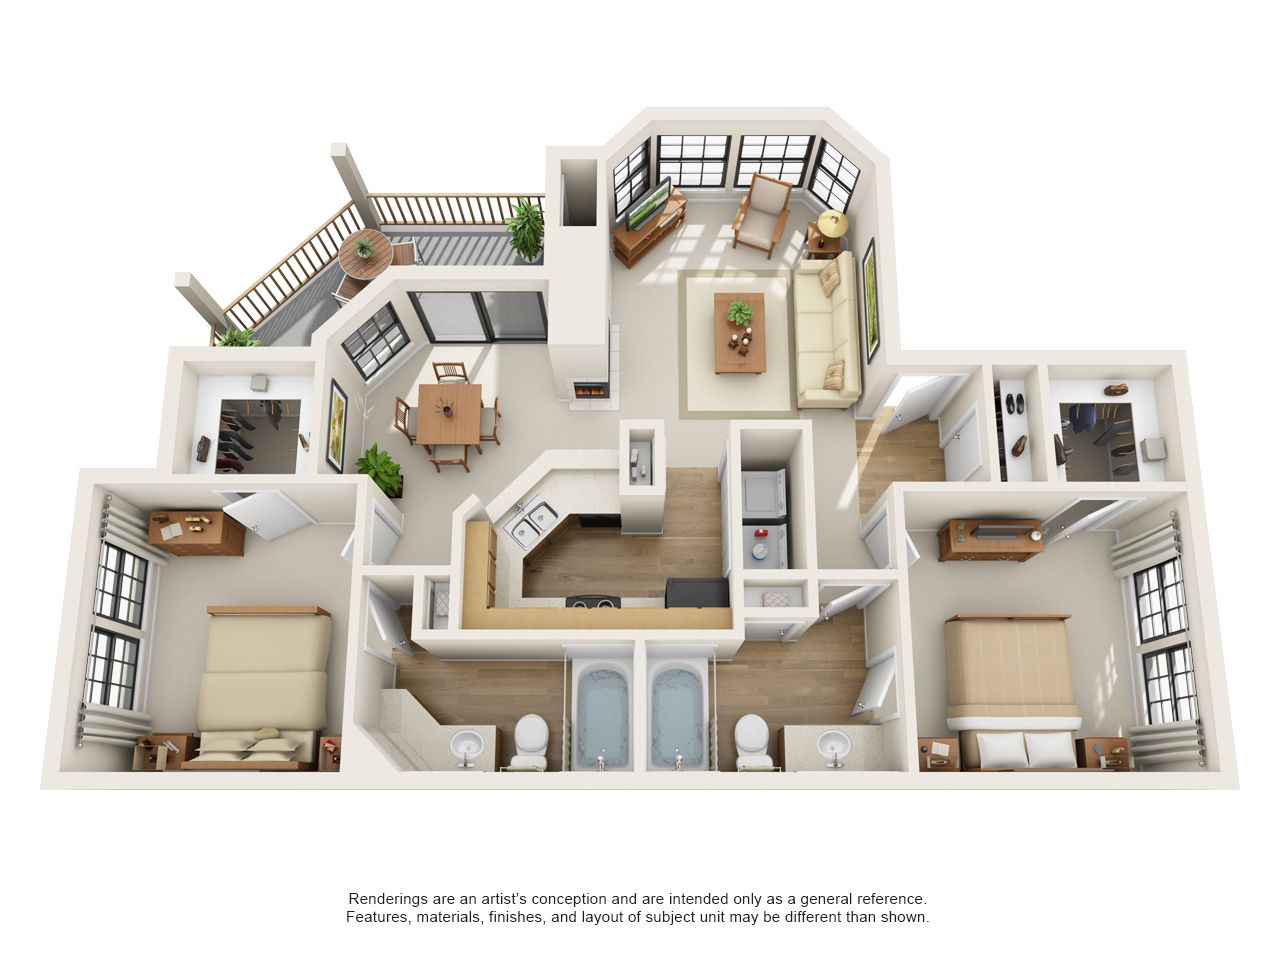 One And Two Bedroom Apartments In Dallas Tx Layouts Dallas Texas Apartment Steadfast Sims 4 House Design Sims House Plans Home Building Design